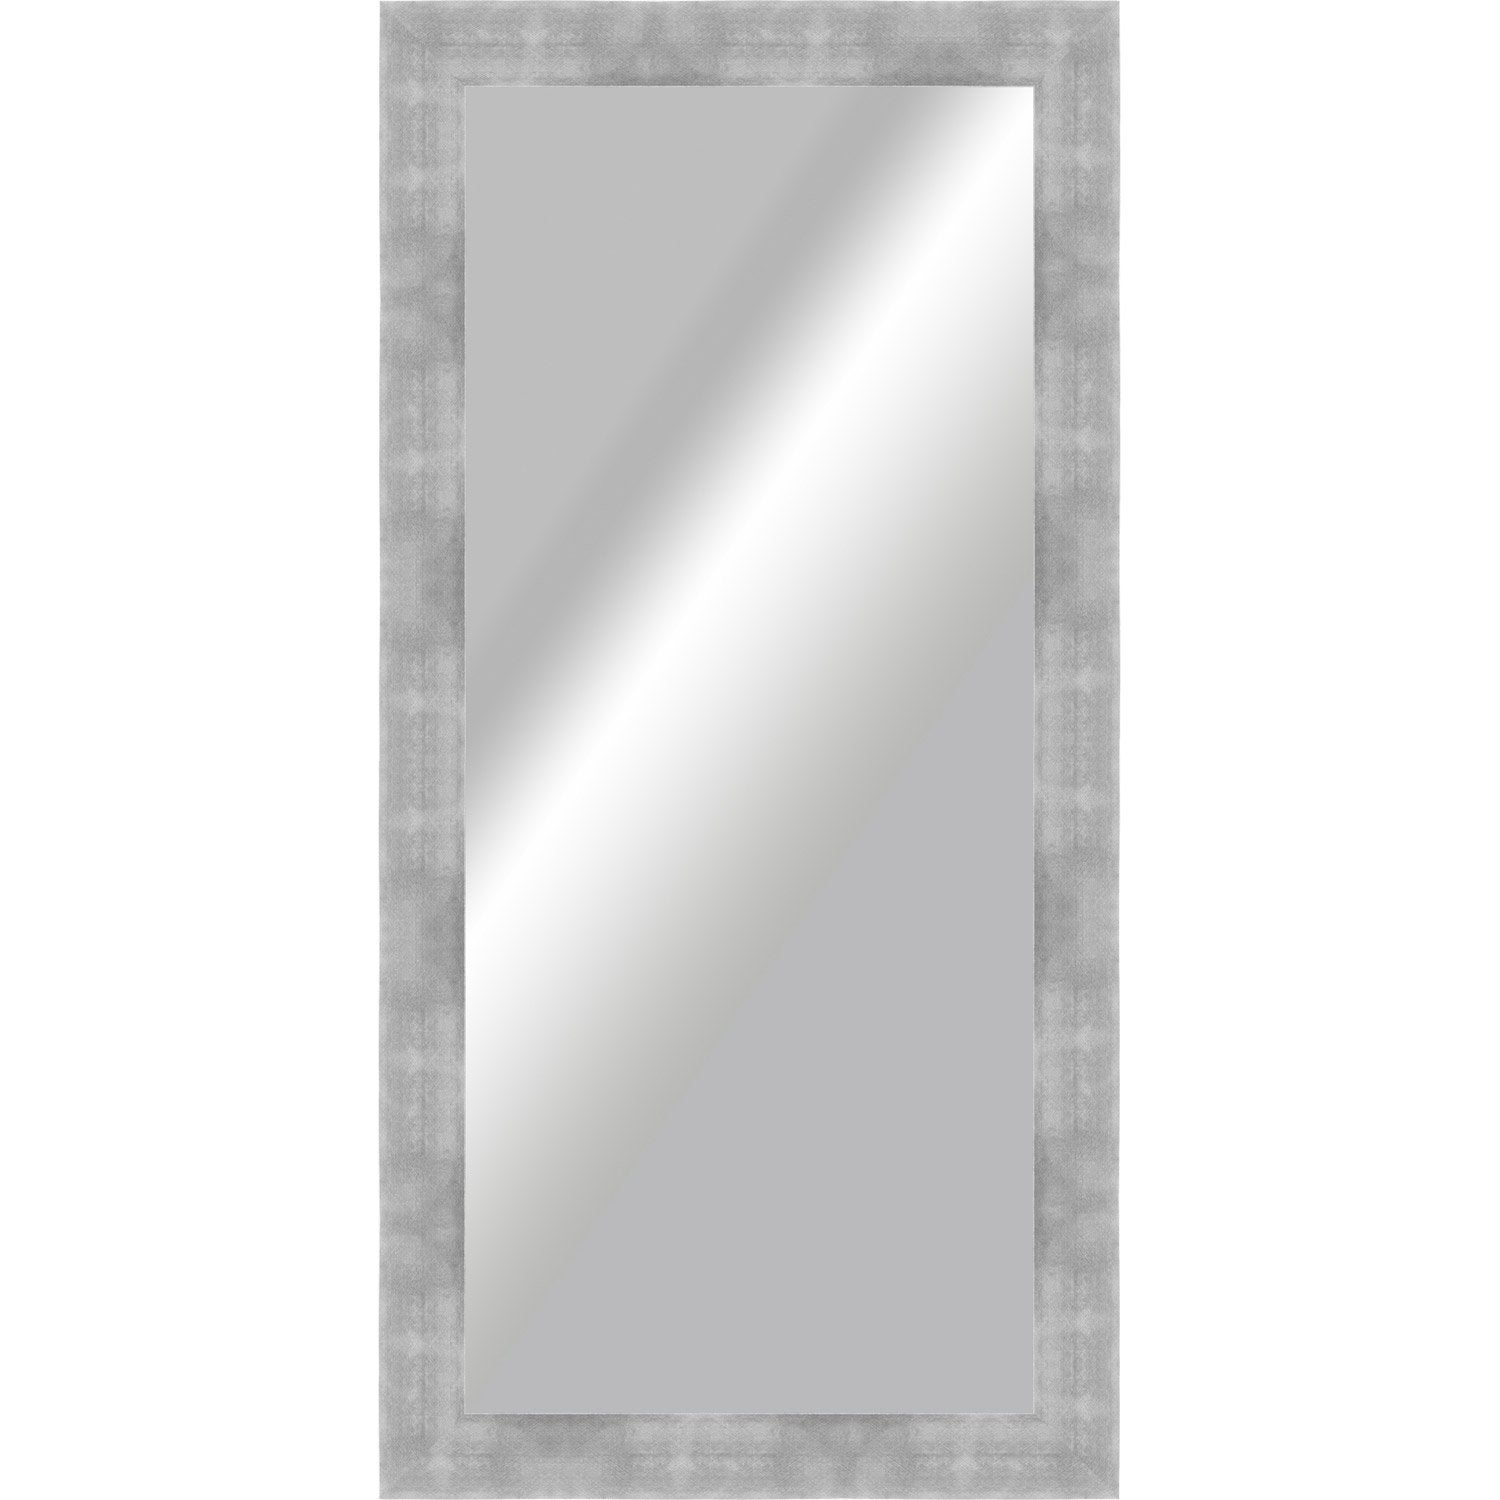 Sch ma r gulation plancher chauffant grand miroir mural for Grand miroir mural